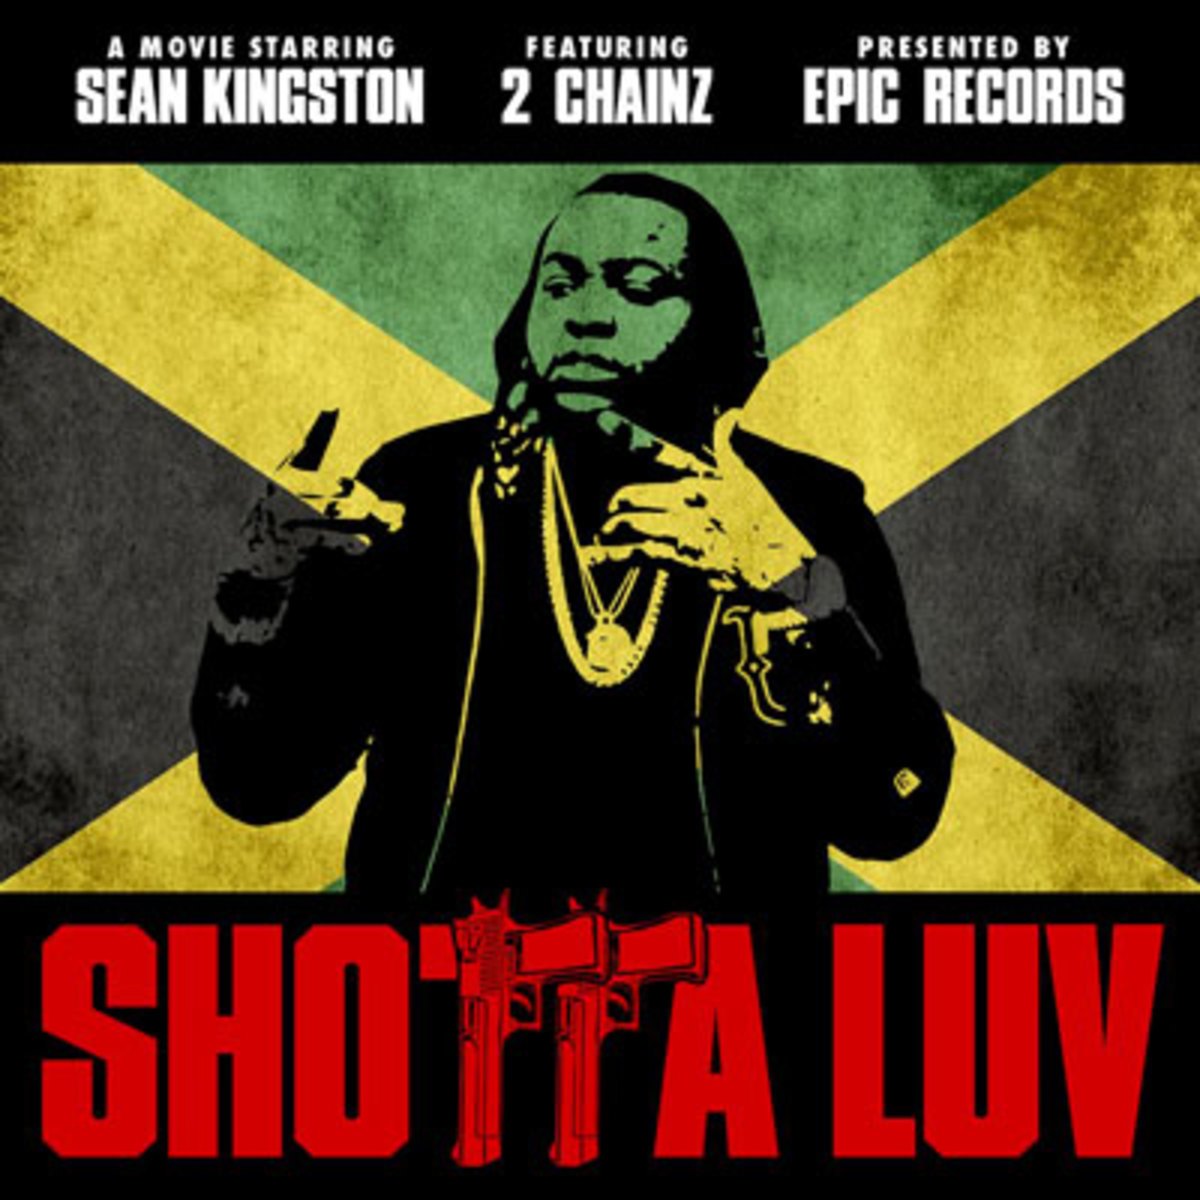 seankingston-shottalove.jpg